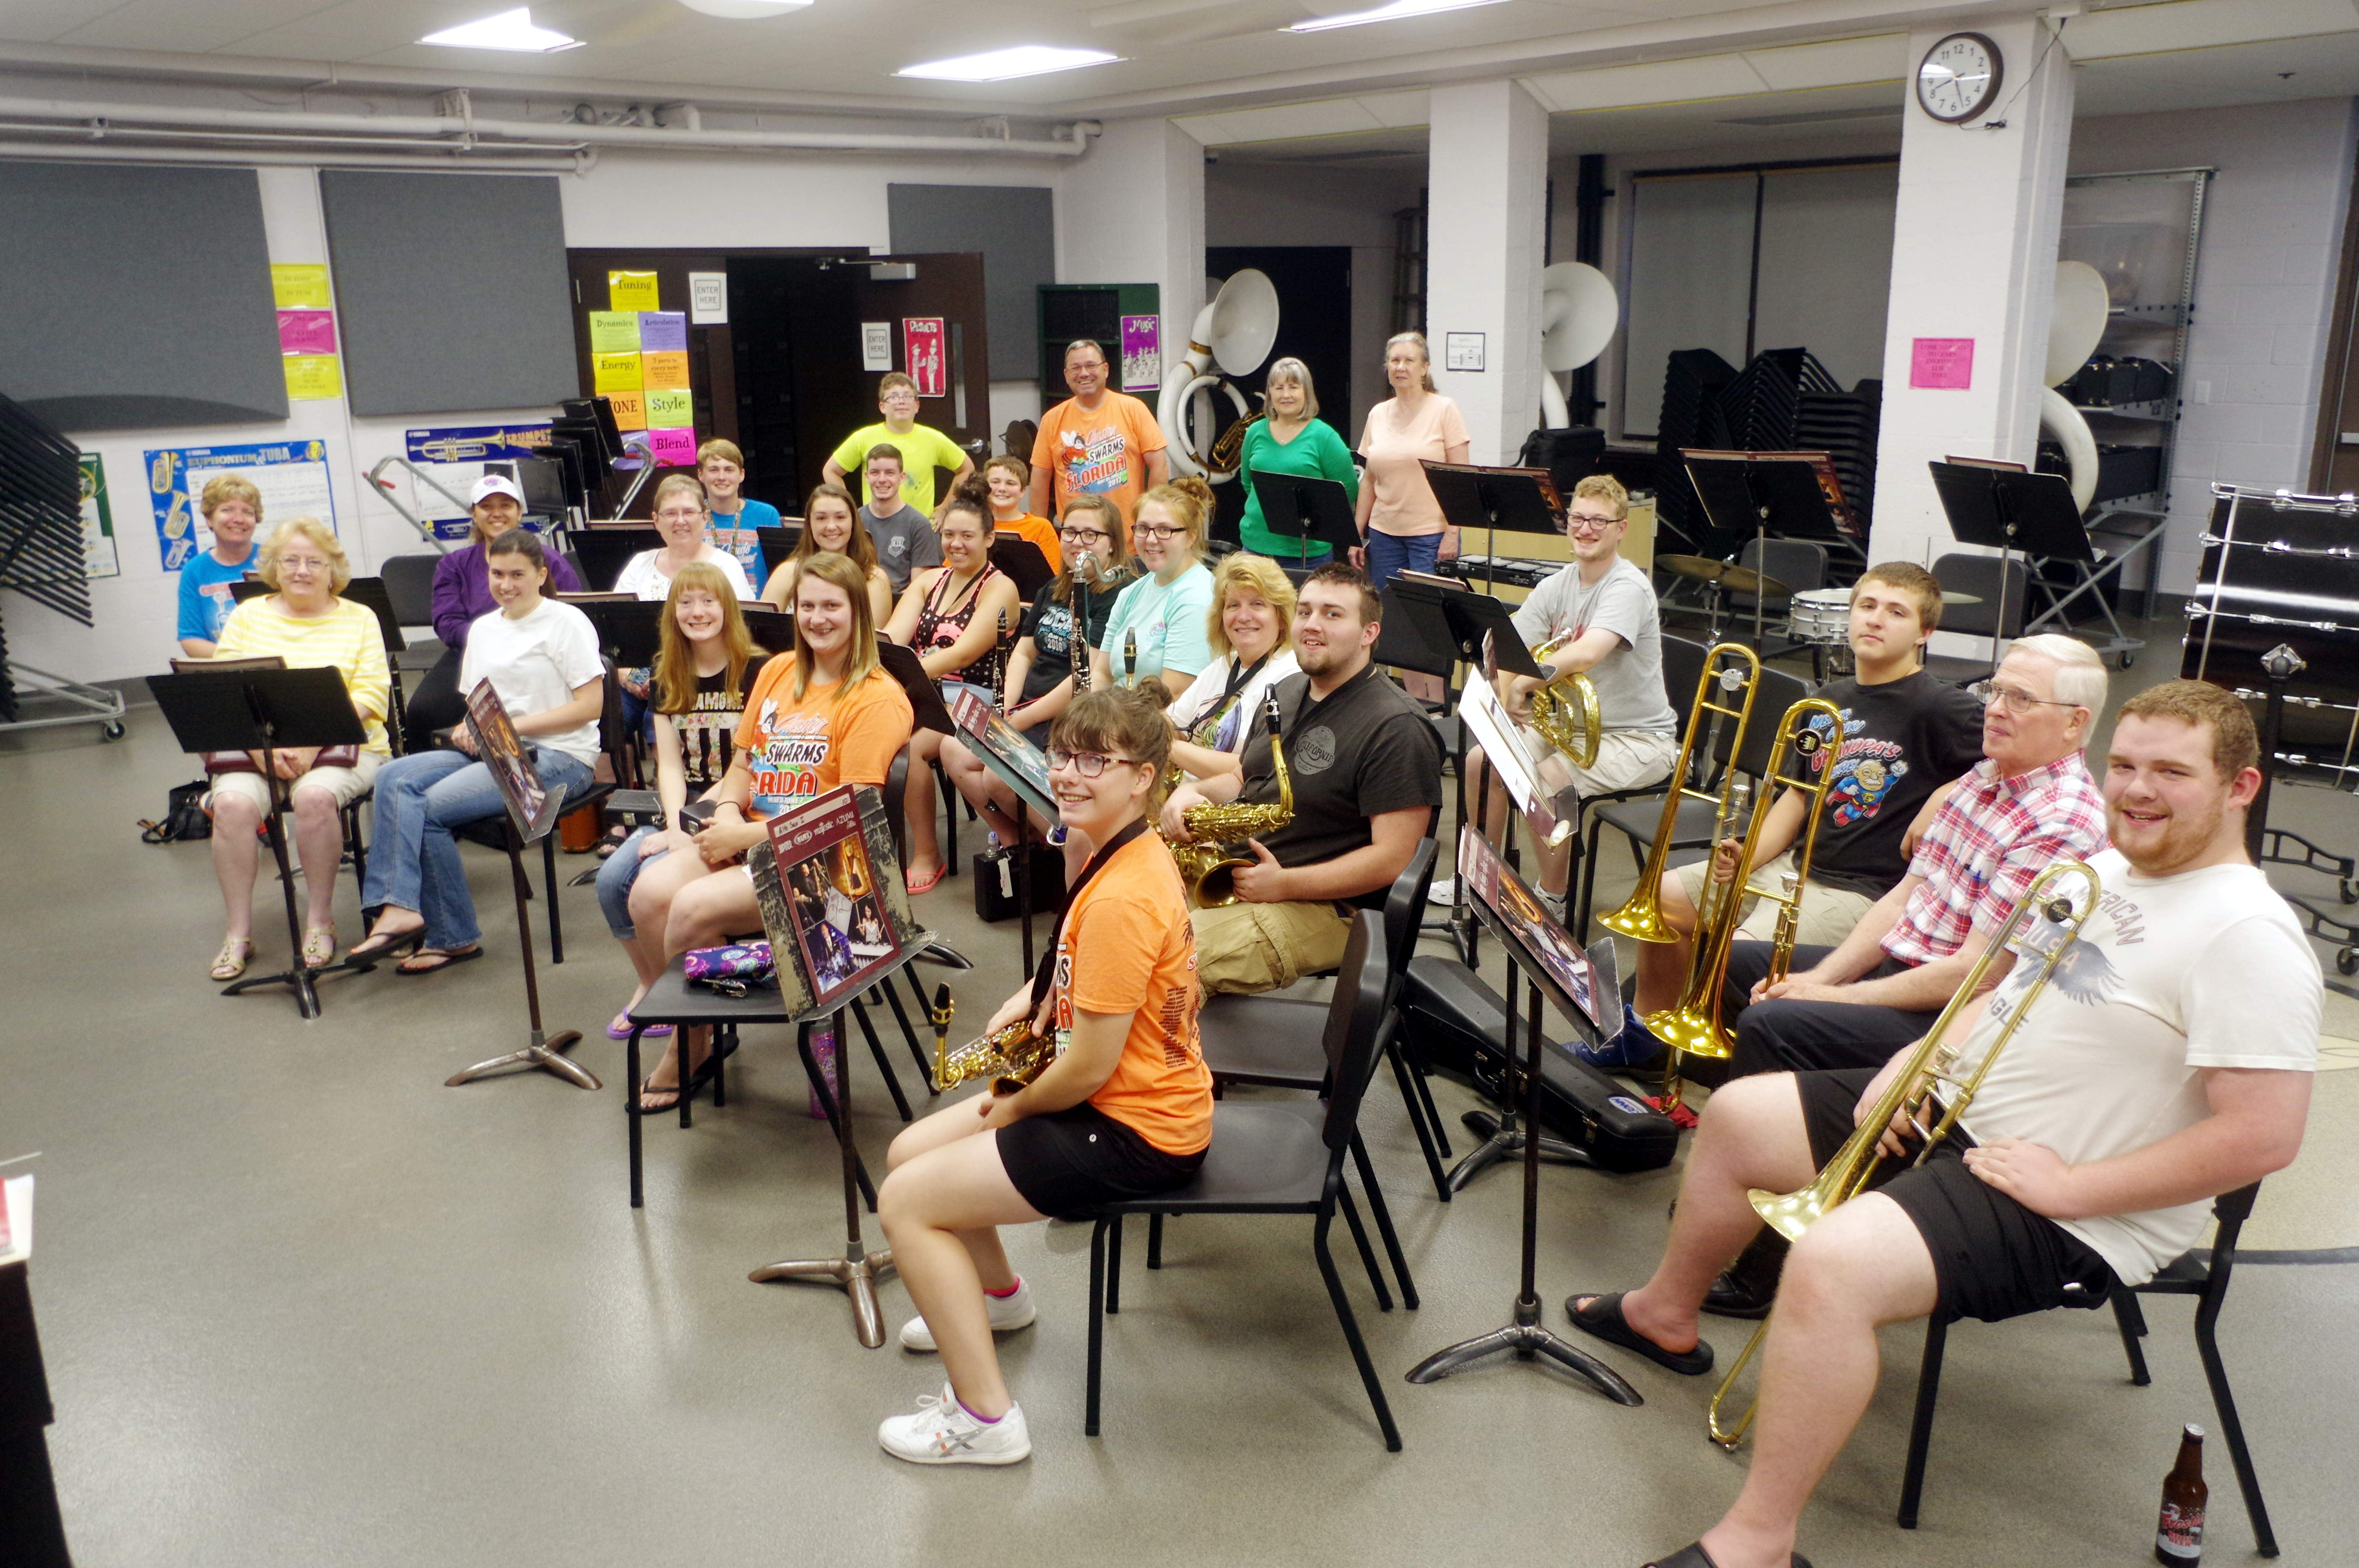 The Chester Municipal Band kicked off the 2017 Summer Concert Series with its first rehearsal June 8 at the Chester Grade School Band Room. This summer marks the 80th Anniversary for the Muni Band.